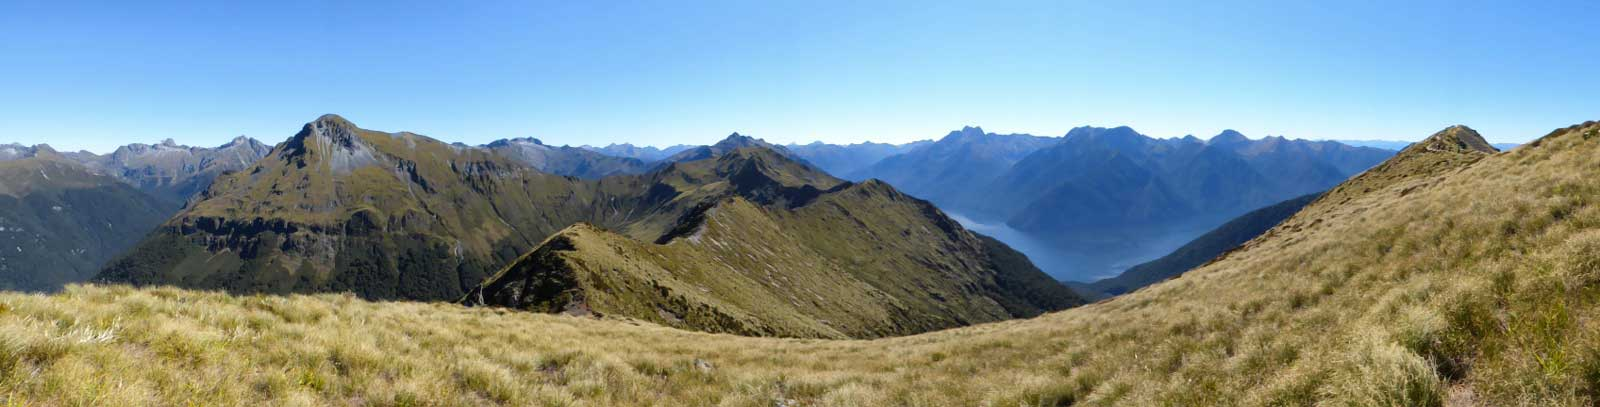 Fiordland-view-4.-Panoramic-view-over-the-mountains